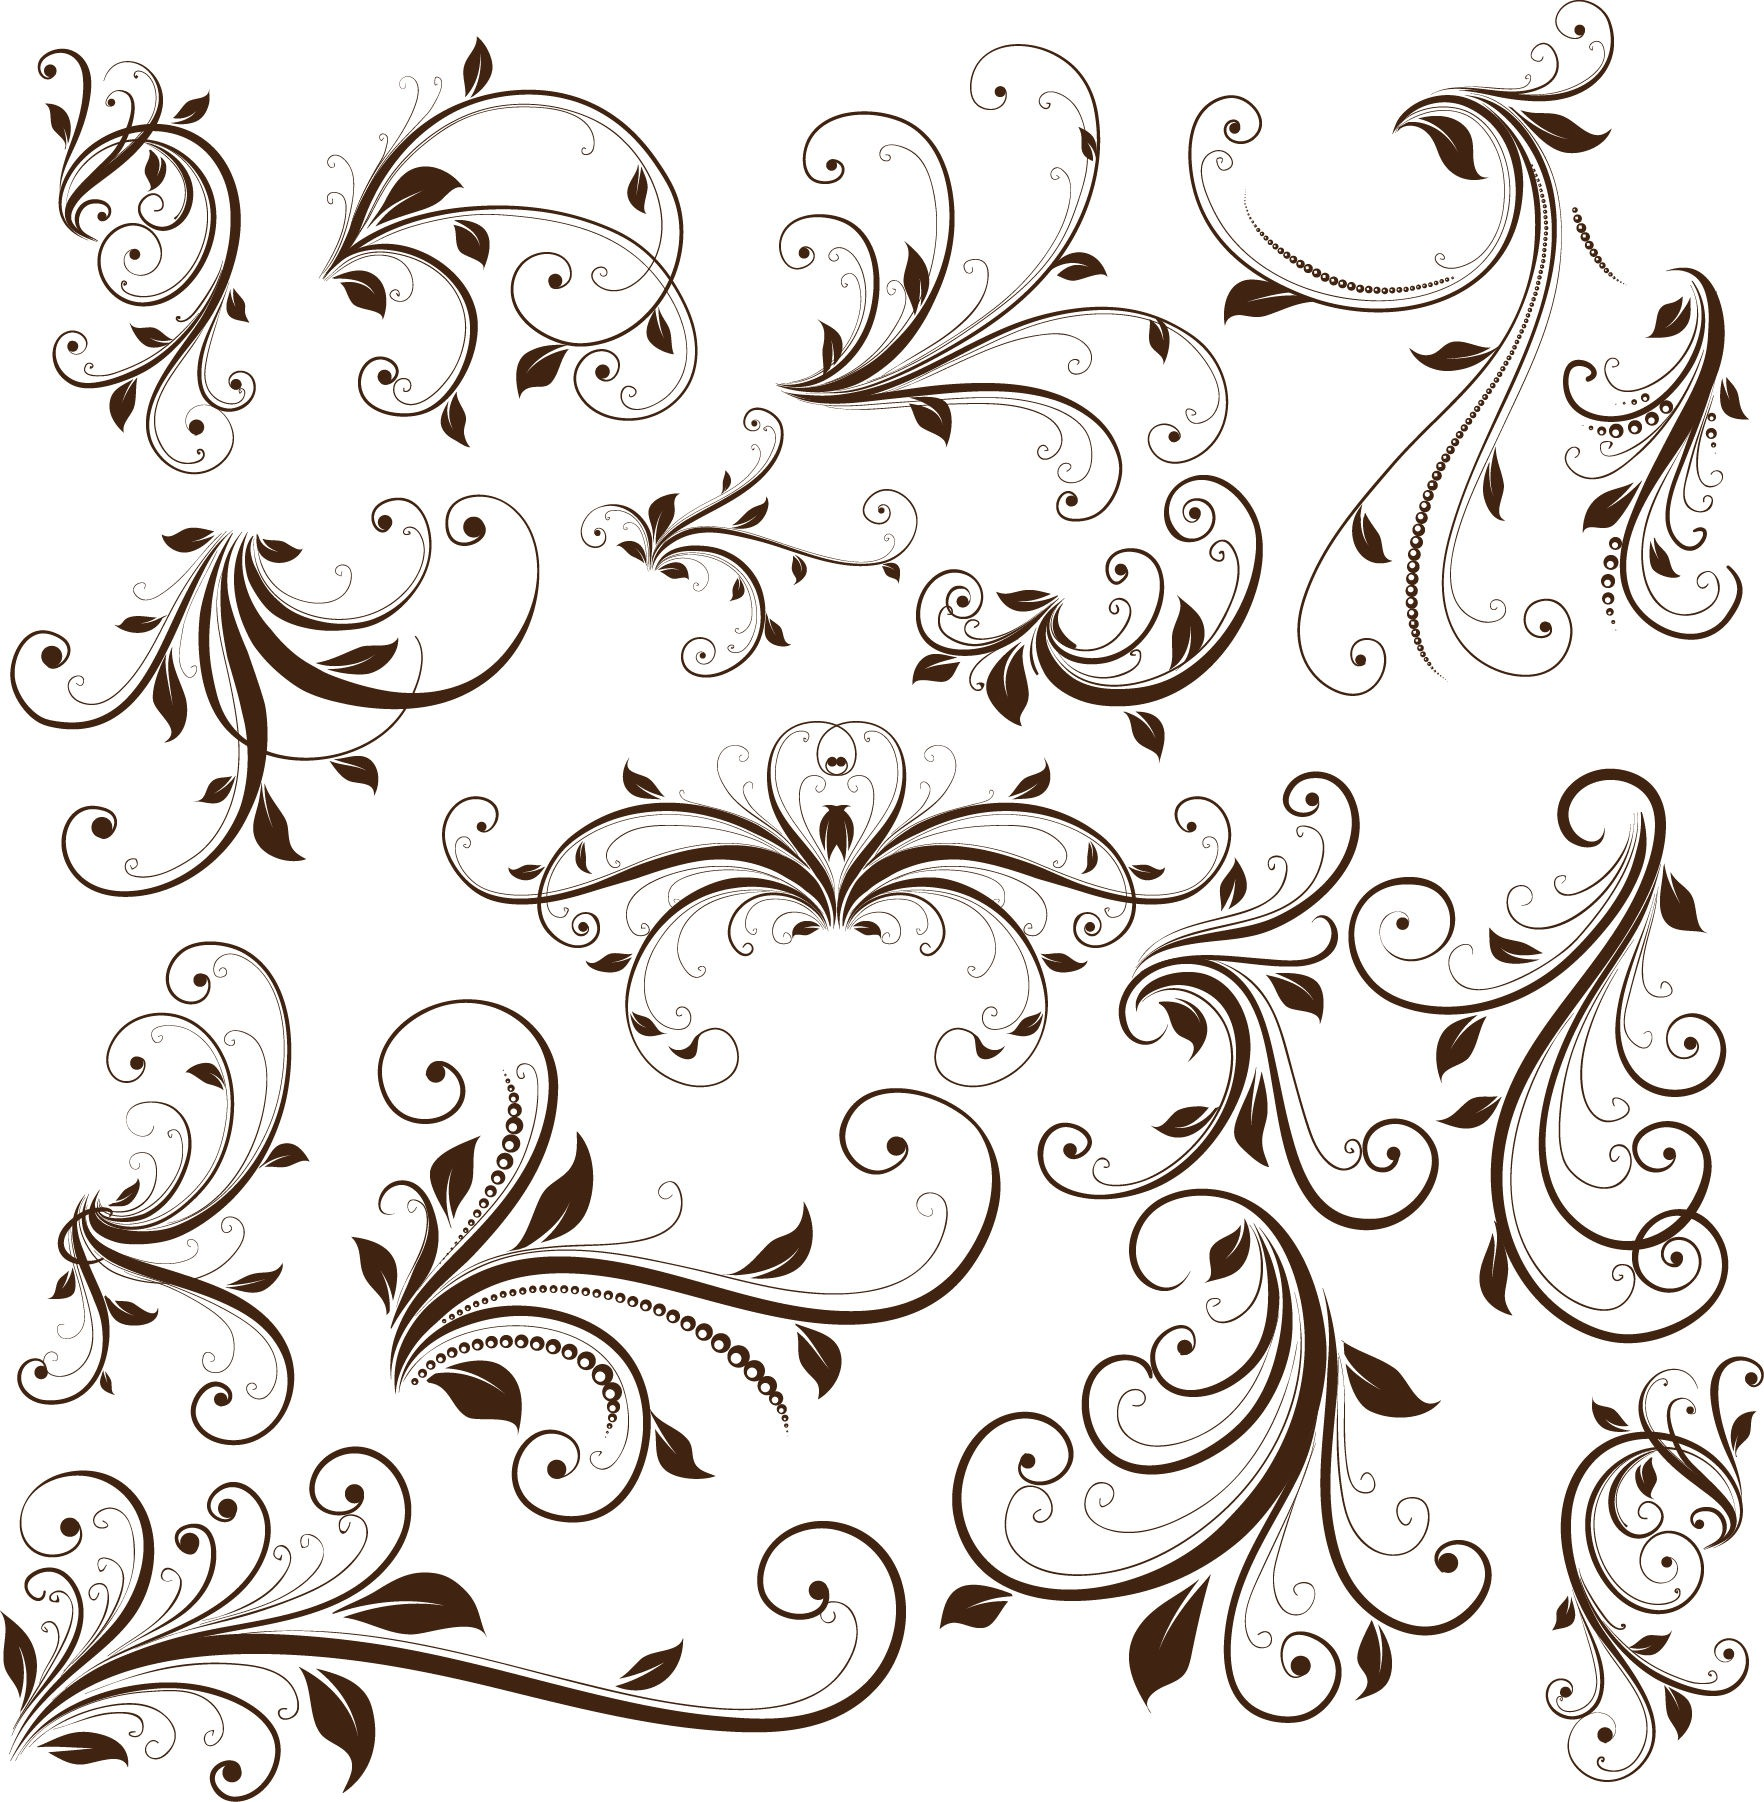 20 Free Vector Decorative Swirls Images